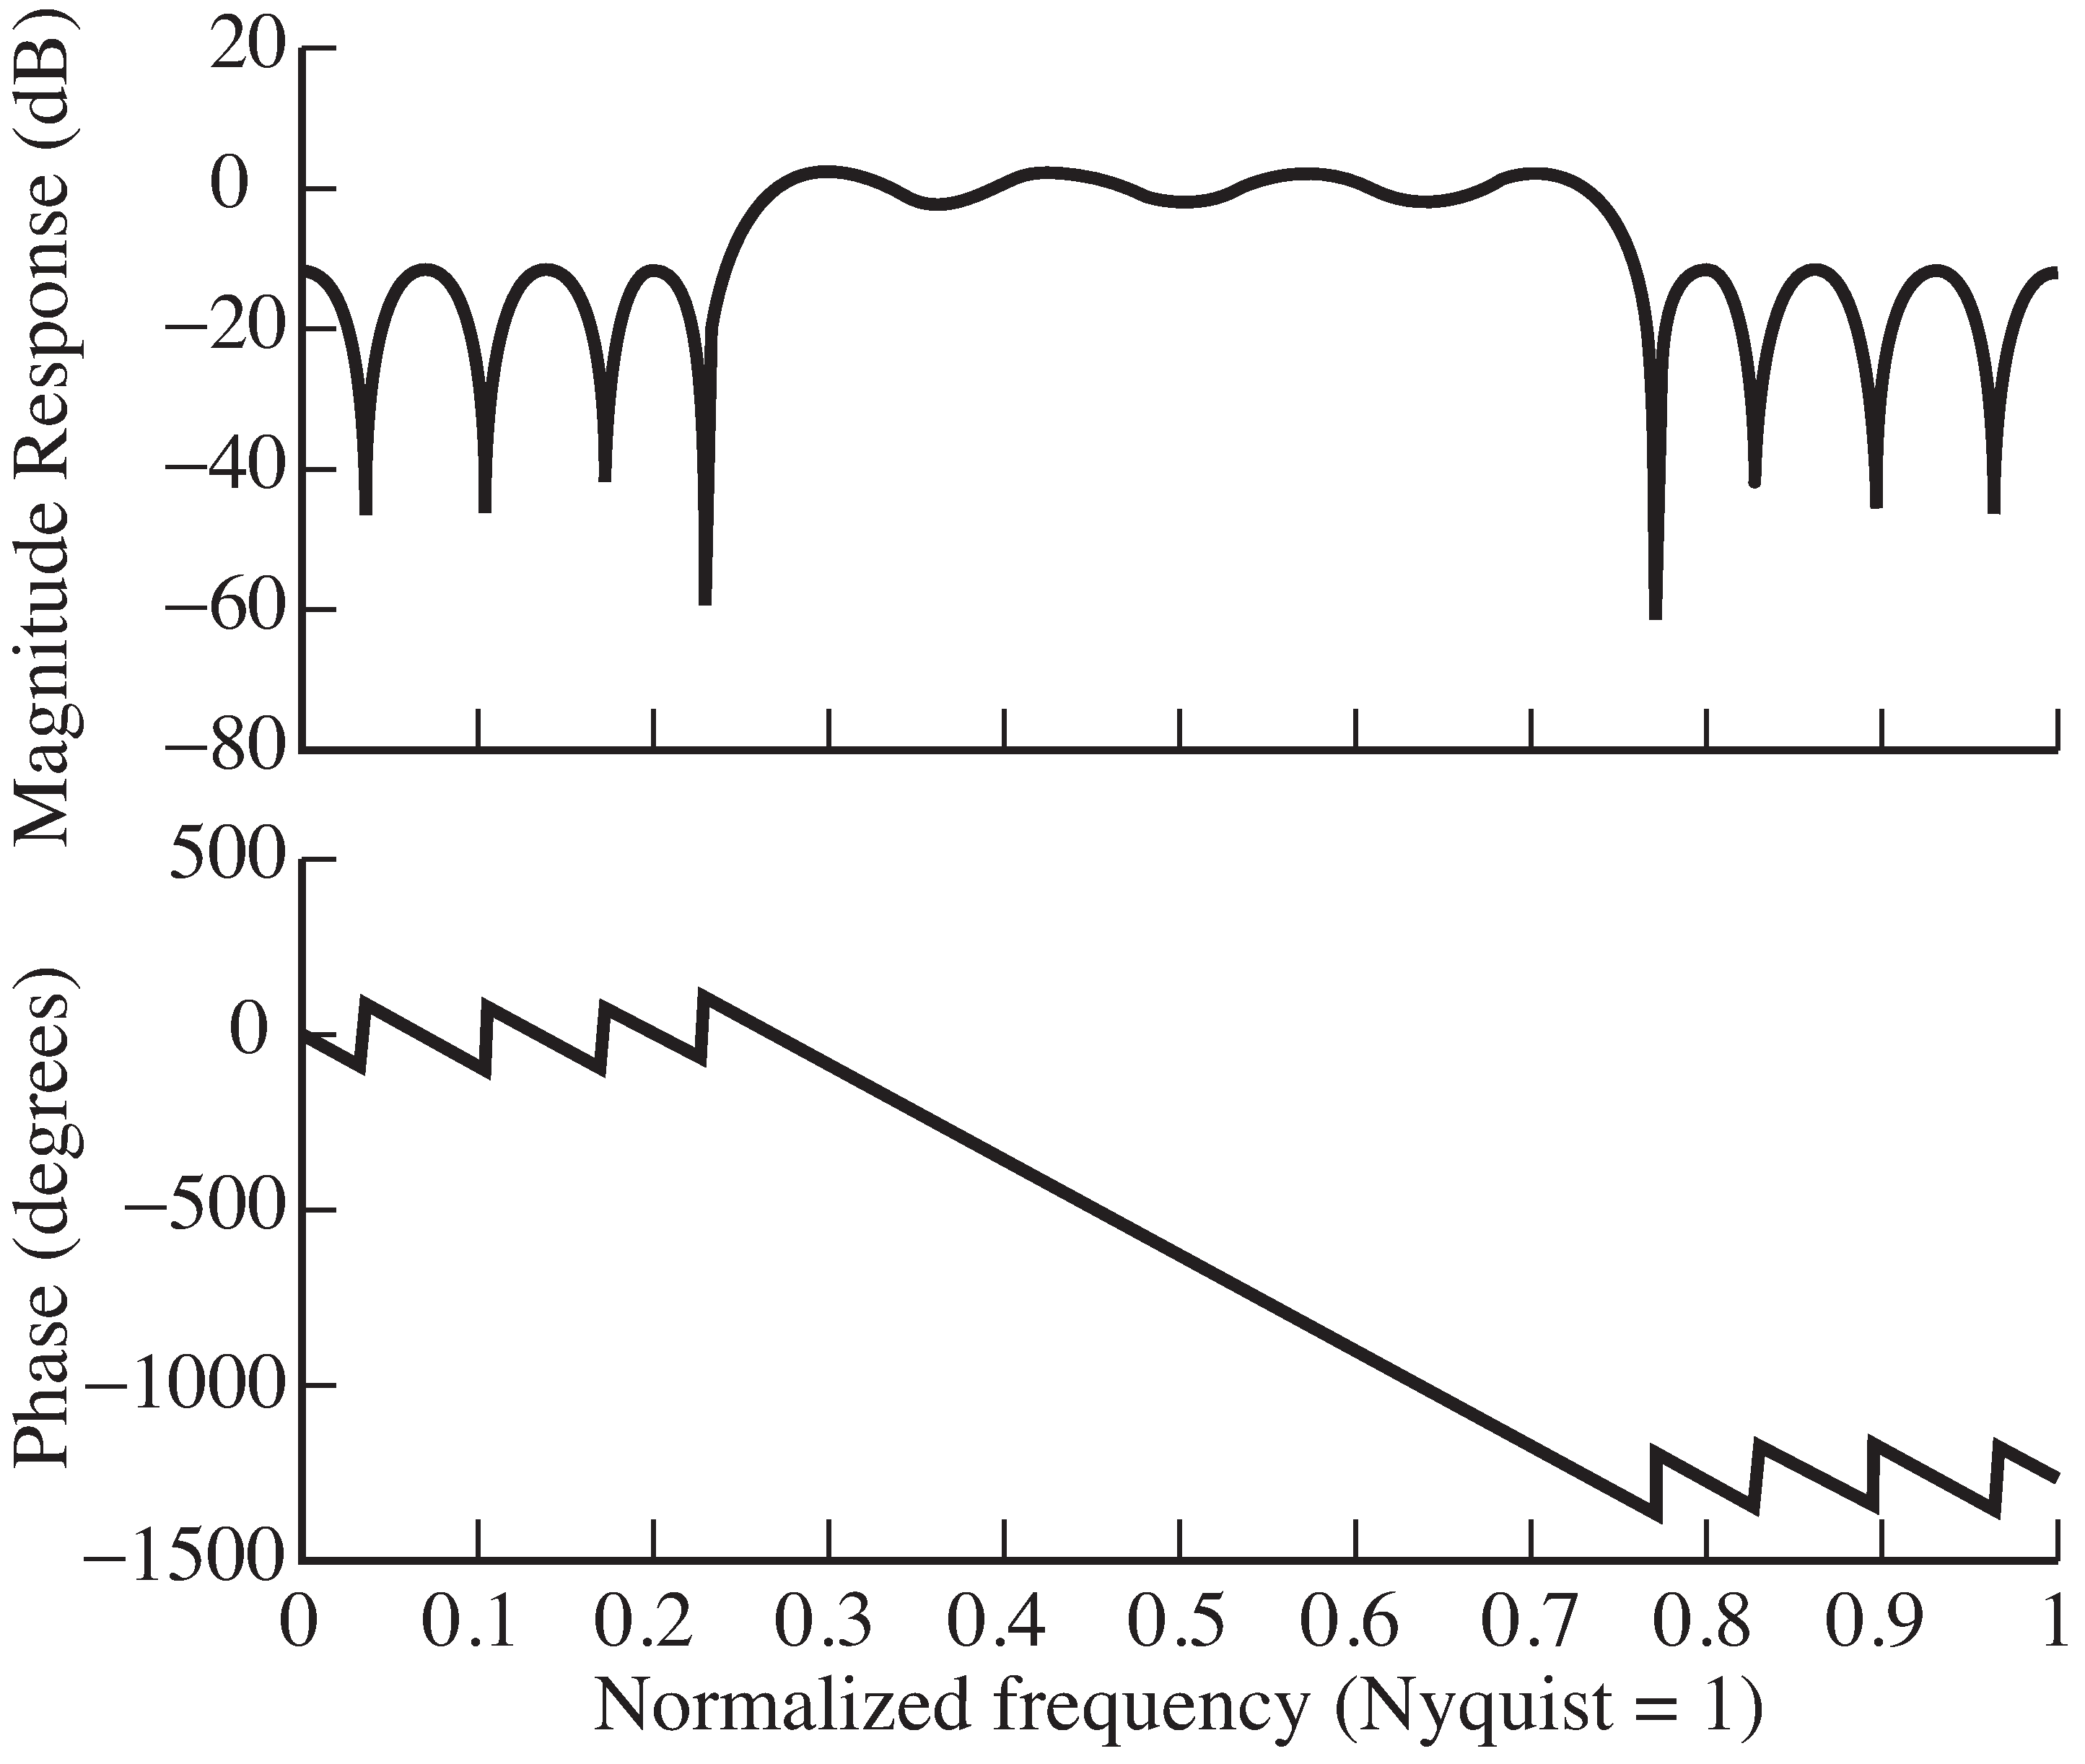 Frequency response of the bandpass filter designed by the firpm  command in bandex.m . The variable fbe  specifies a set of frequencies (as a fraction of the Nyquist rate) and damps  specifies the corresponding amplitudes. The freqz  command plots both the magnitude and phase spectra of the filter.